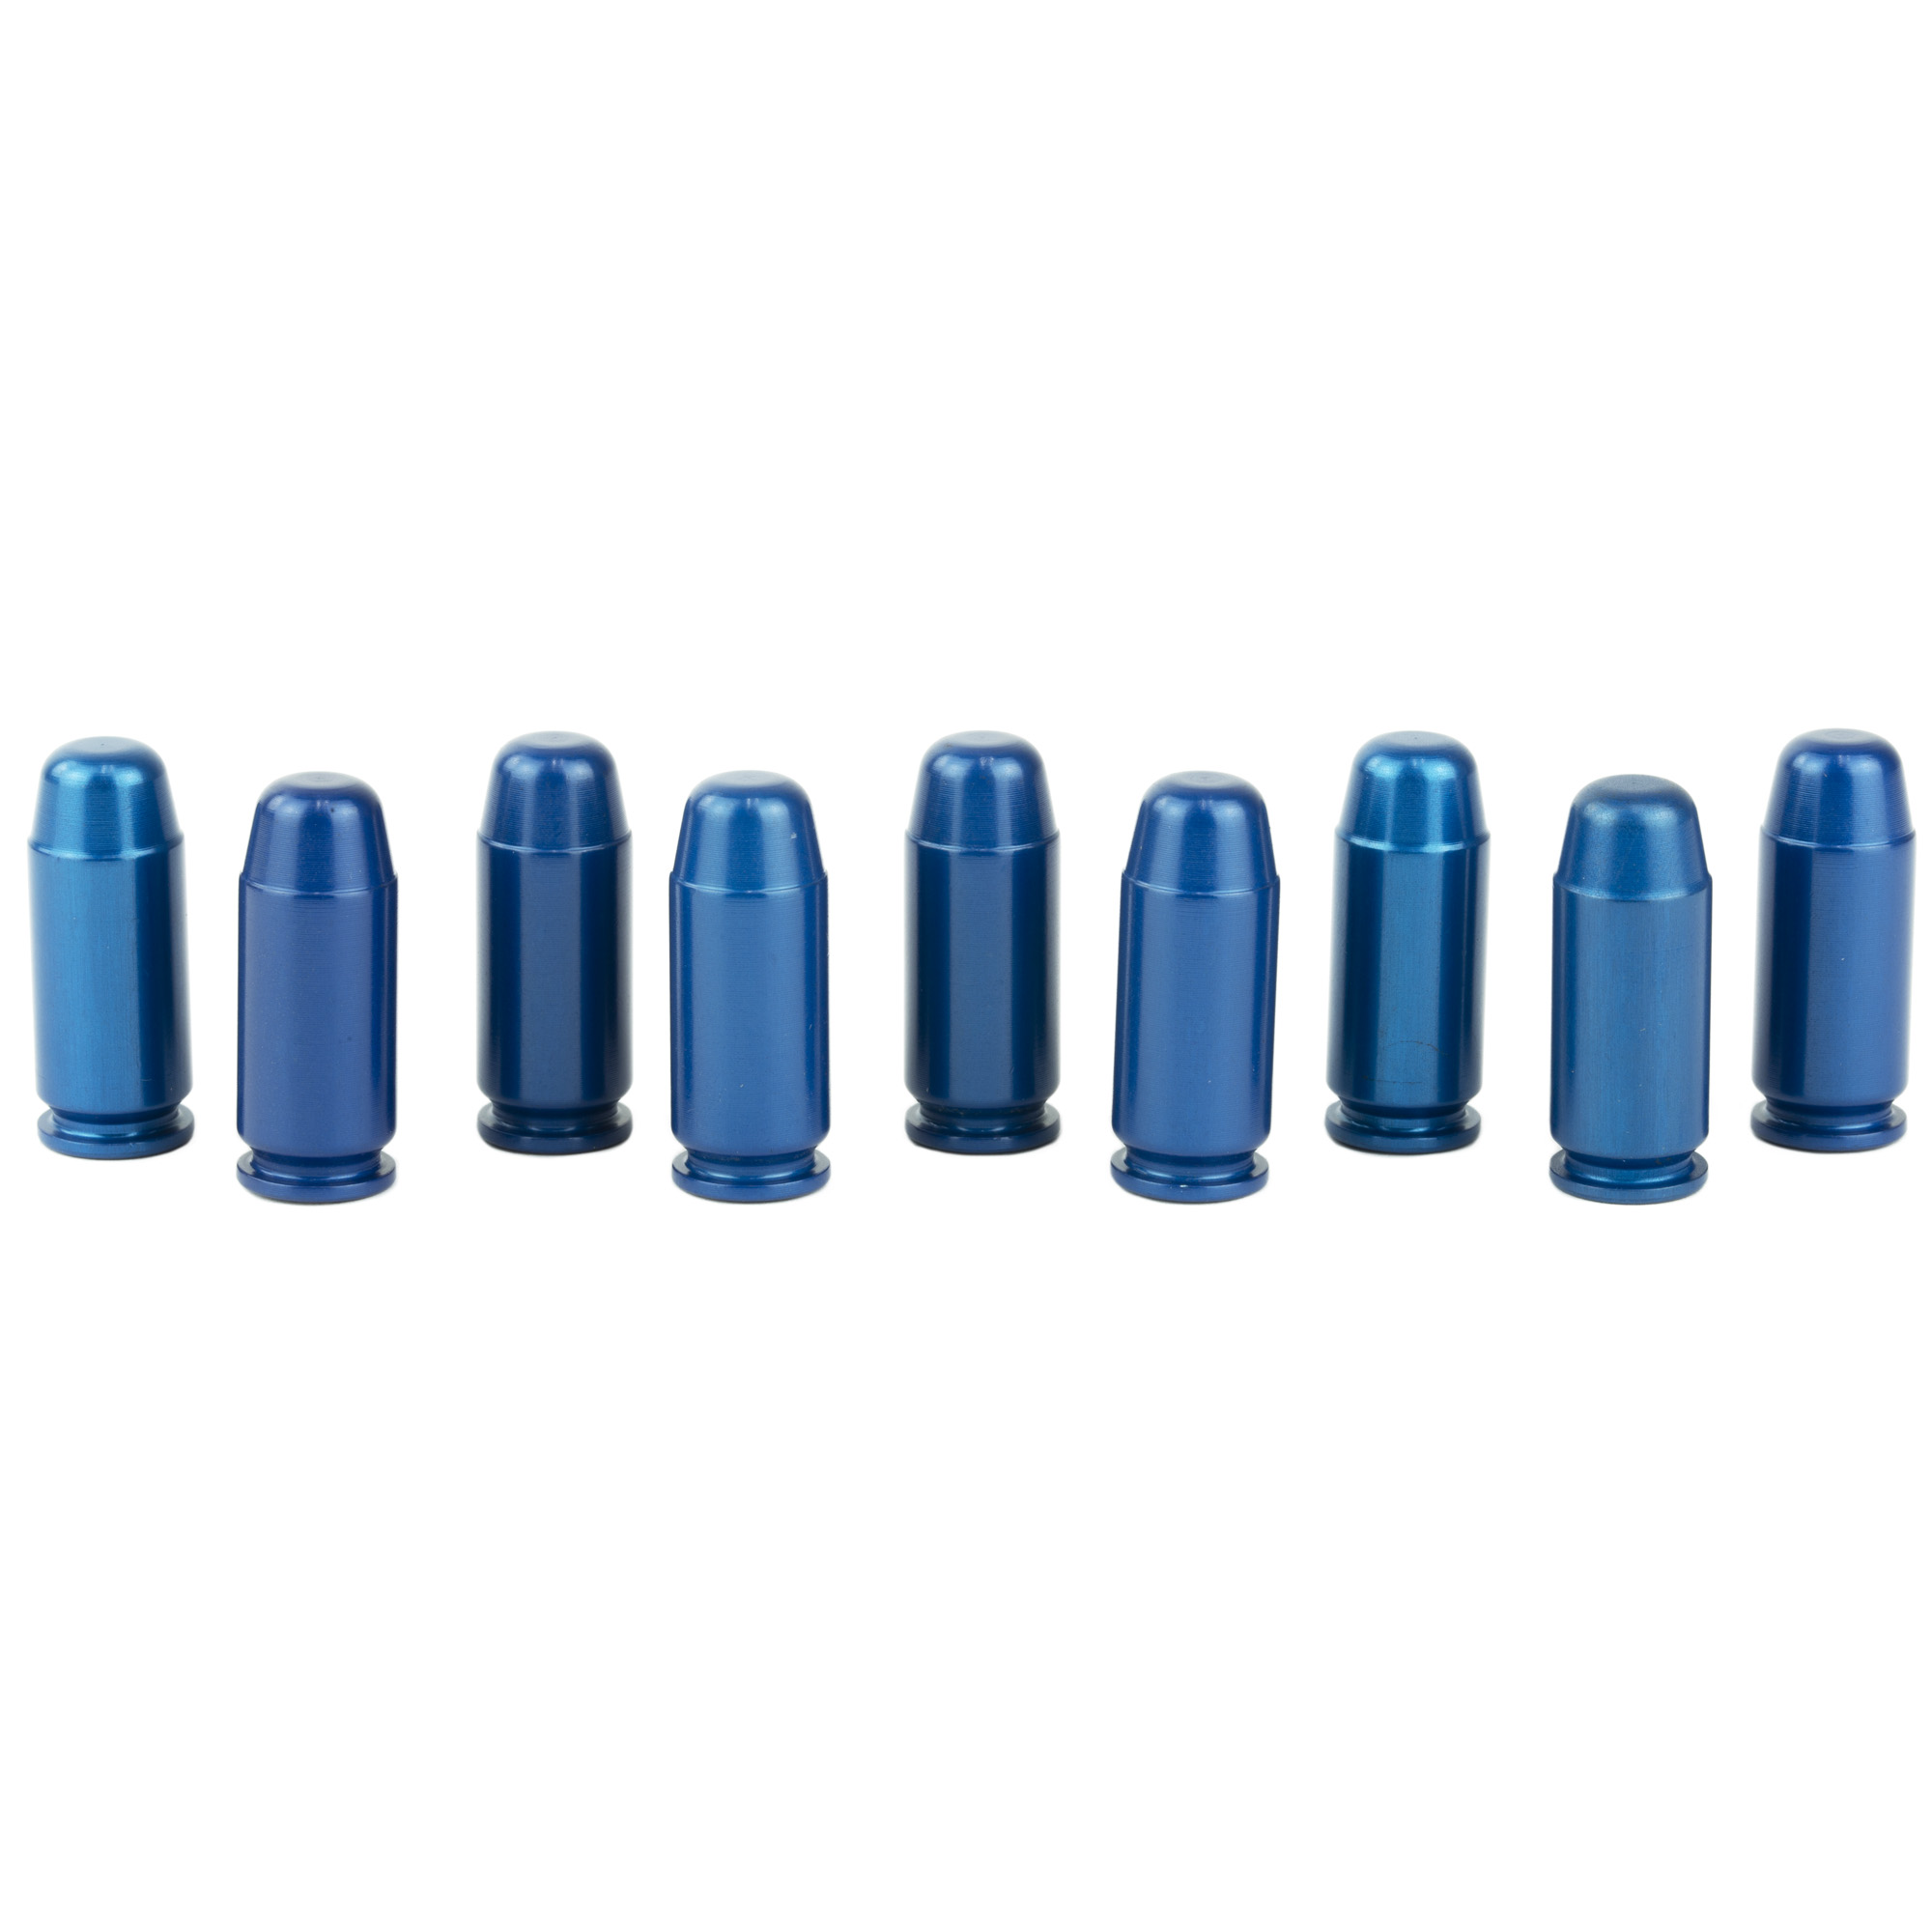 """For safety training"""" function testing or safely decocking without damaging the firing pin"""" A-Zoom training rounds are much more than conventional snap-caps. They are precision CNC machined from solid aluminum to precise cartridge dimensions"""" then hard anodized for ultra-smooth functioning and long life."""